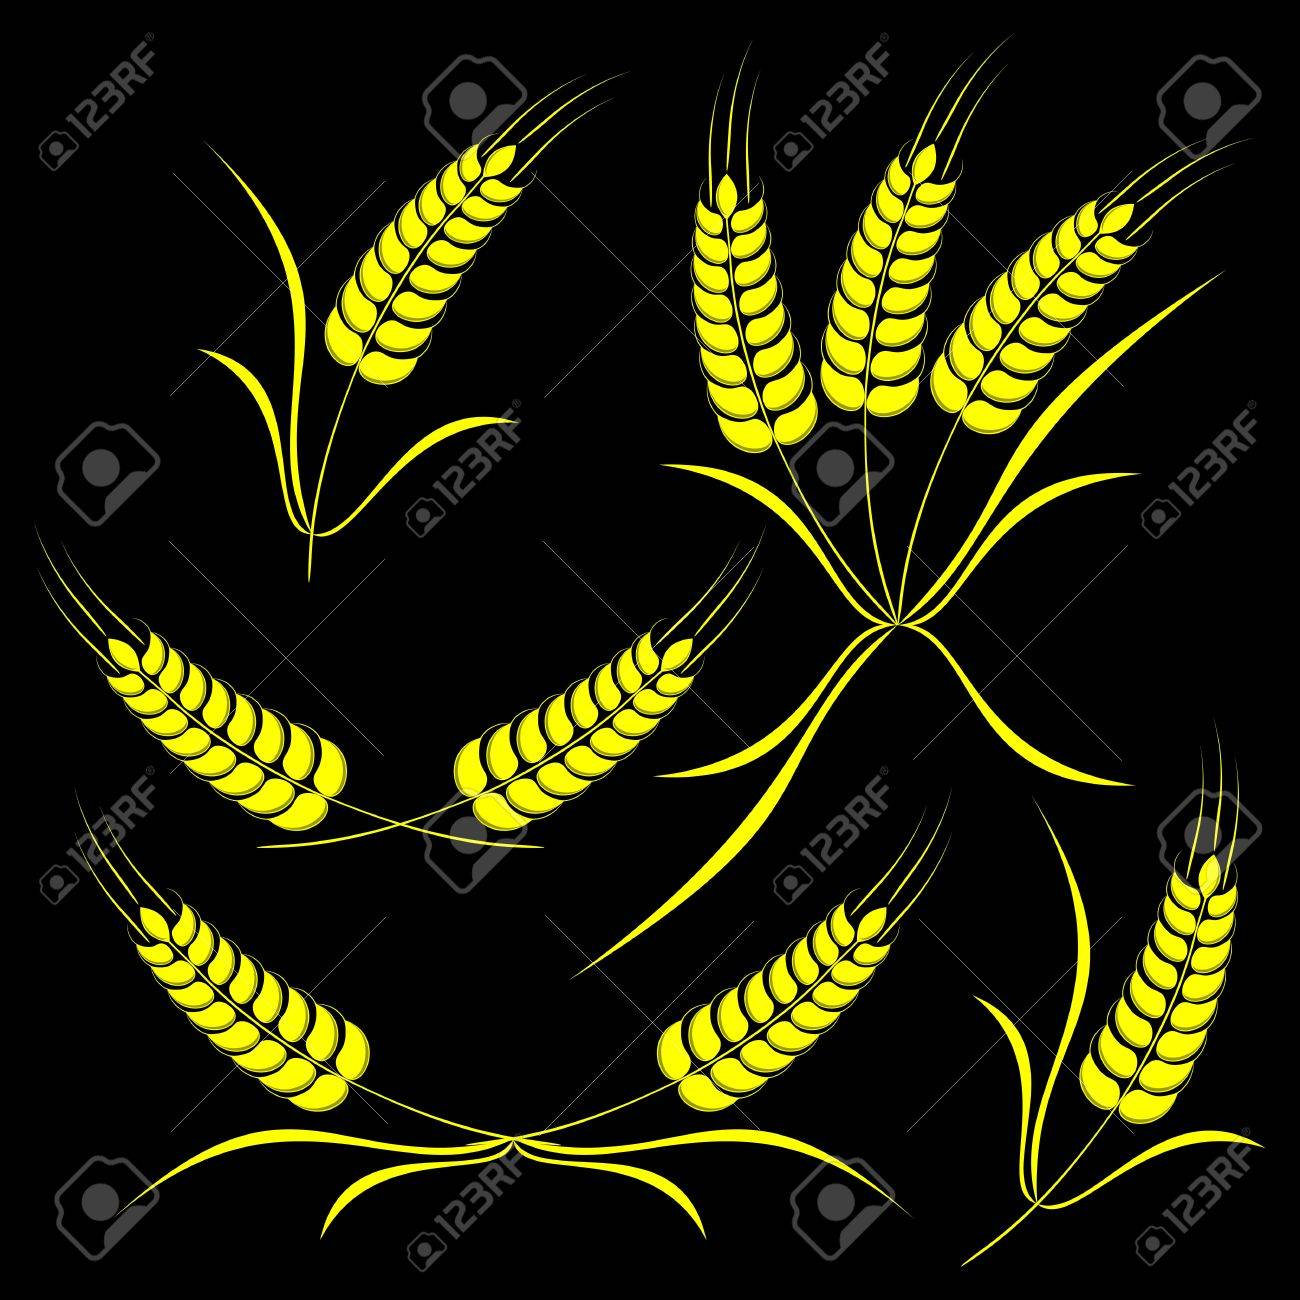 Set of the isolated ears of wheat on a black background. Stock Vector - 12203430